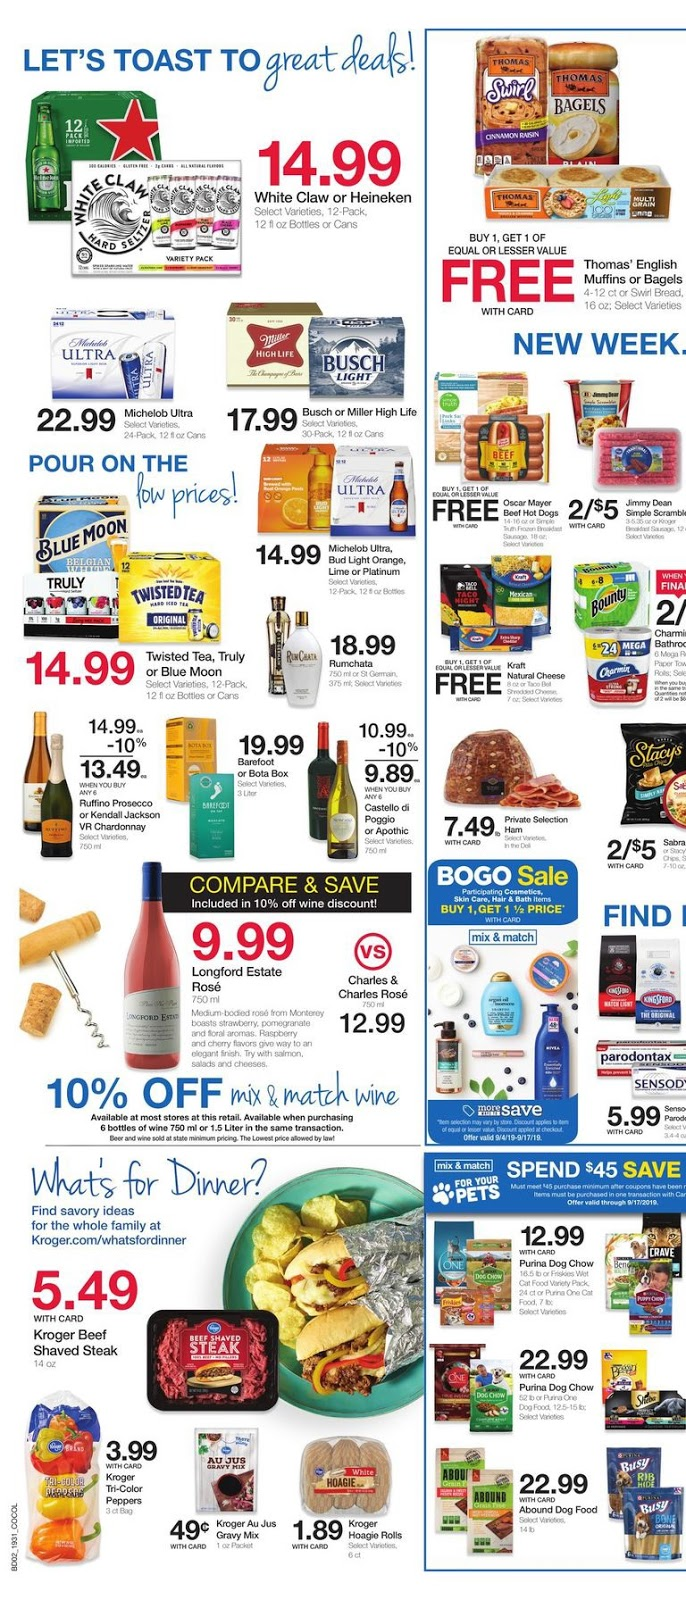 Kroger Ad September 4 - 10, 2019 and Kroger Ad 9/11/19